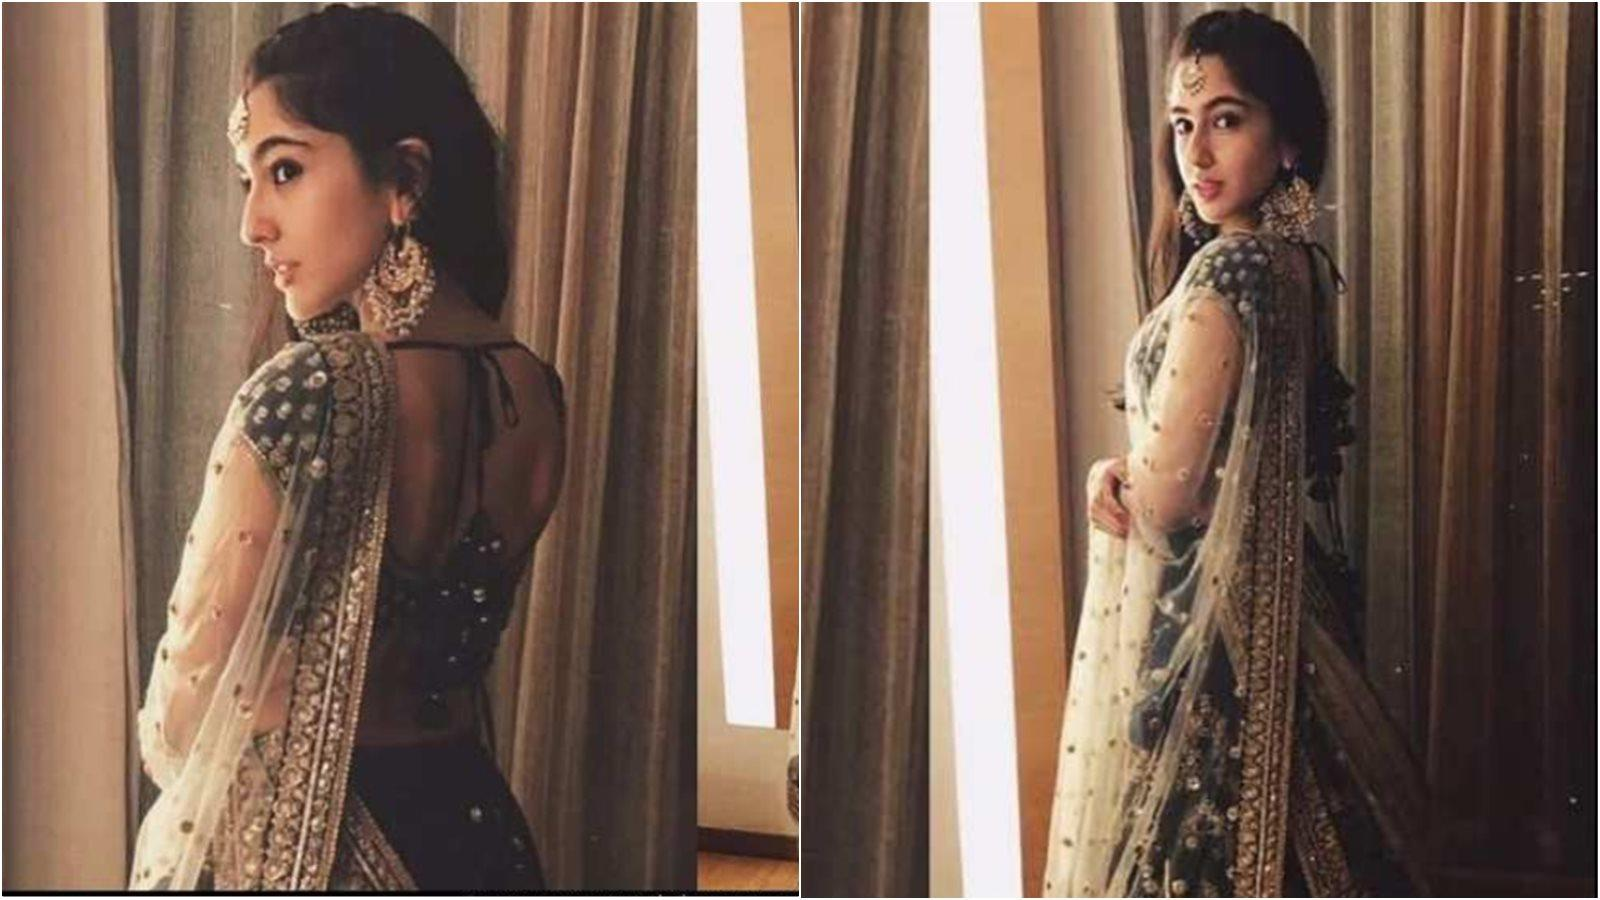 a-little-sparkle-and-a-lot-of-shine-makes-sara-ali-khan-a-happy-soul